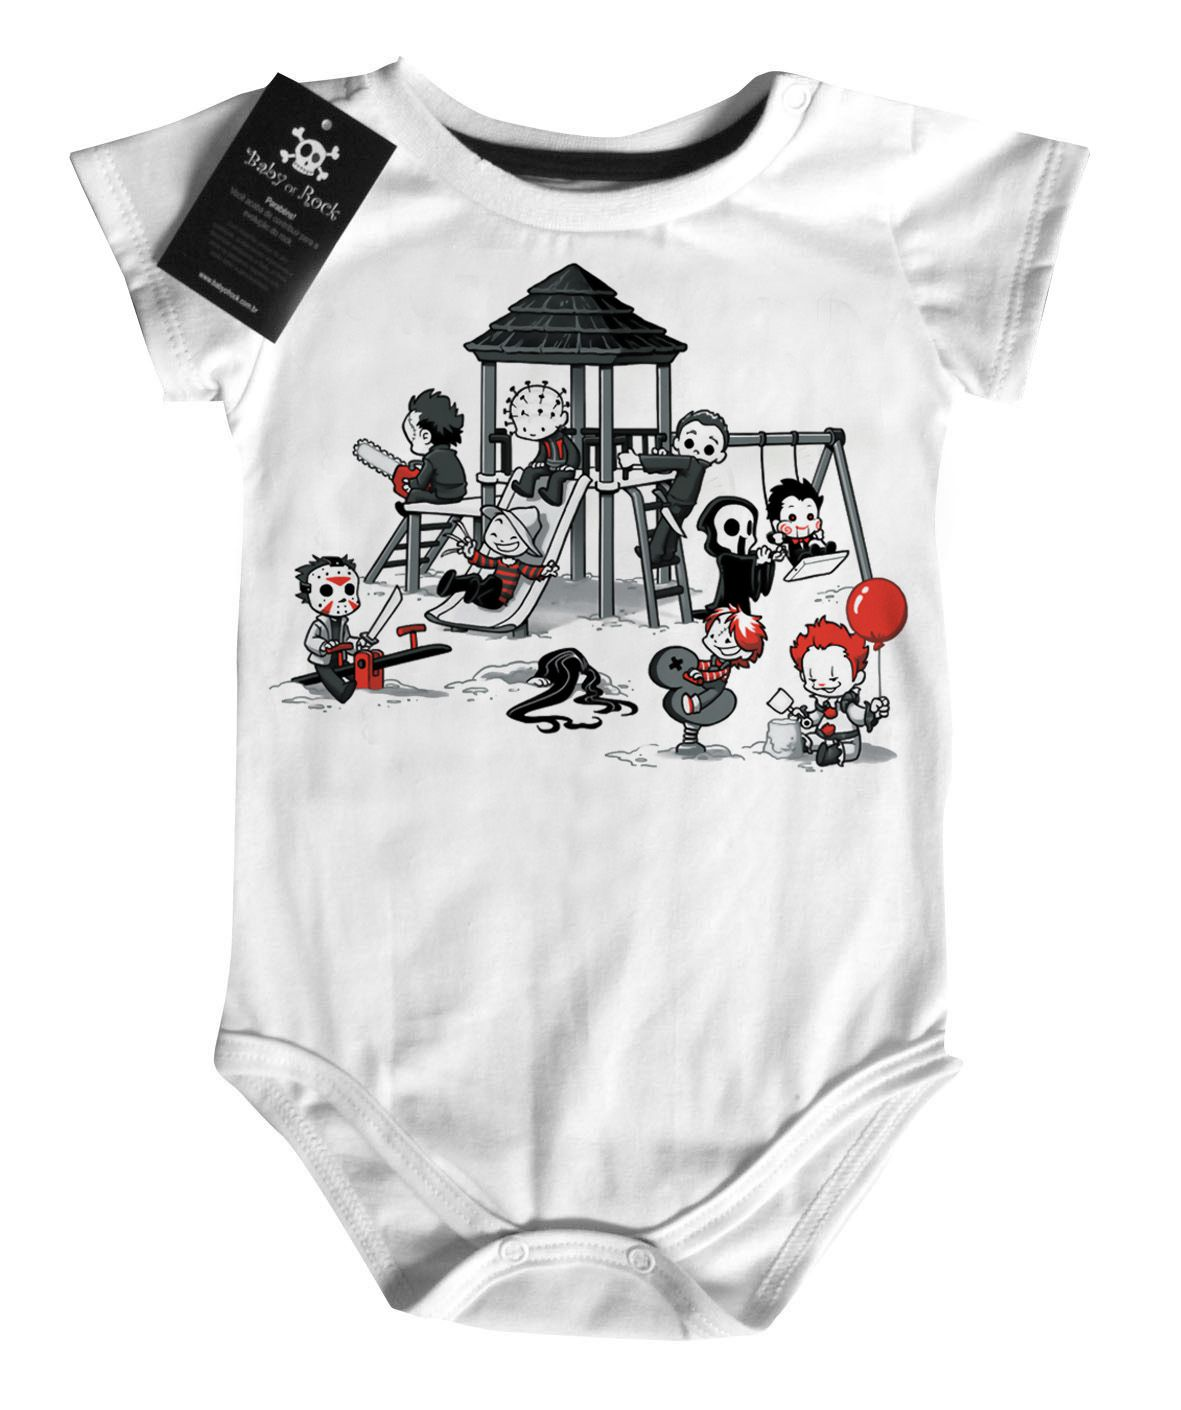 Body Bebe ou Camiseta Infantil Park Terror Cute - White  - Baby Monster - Body Bebe